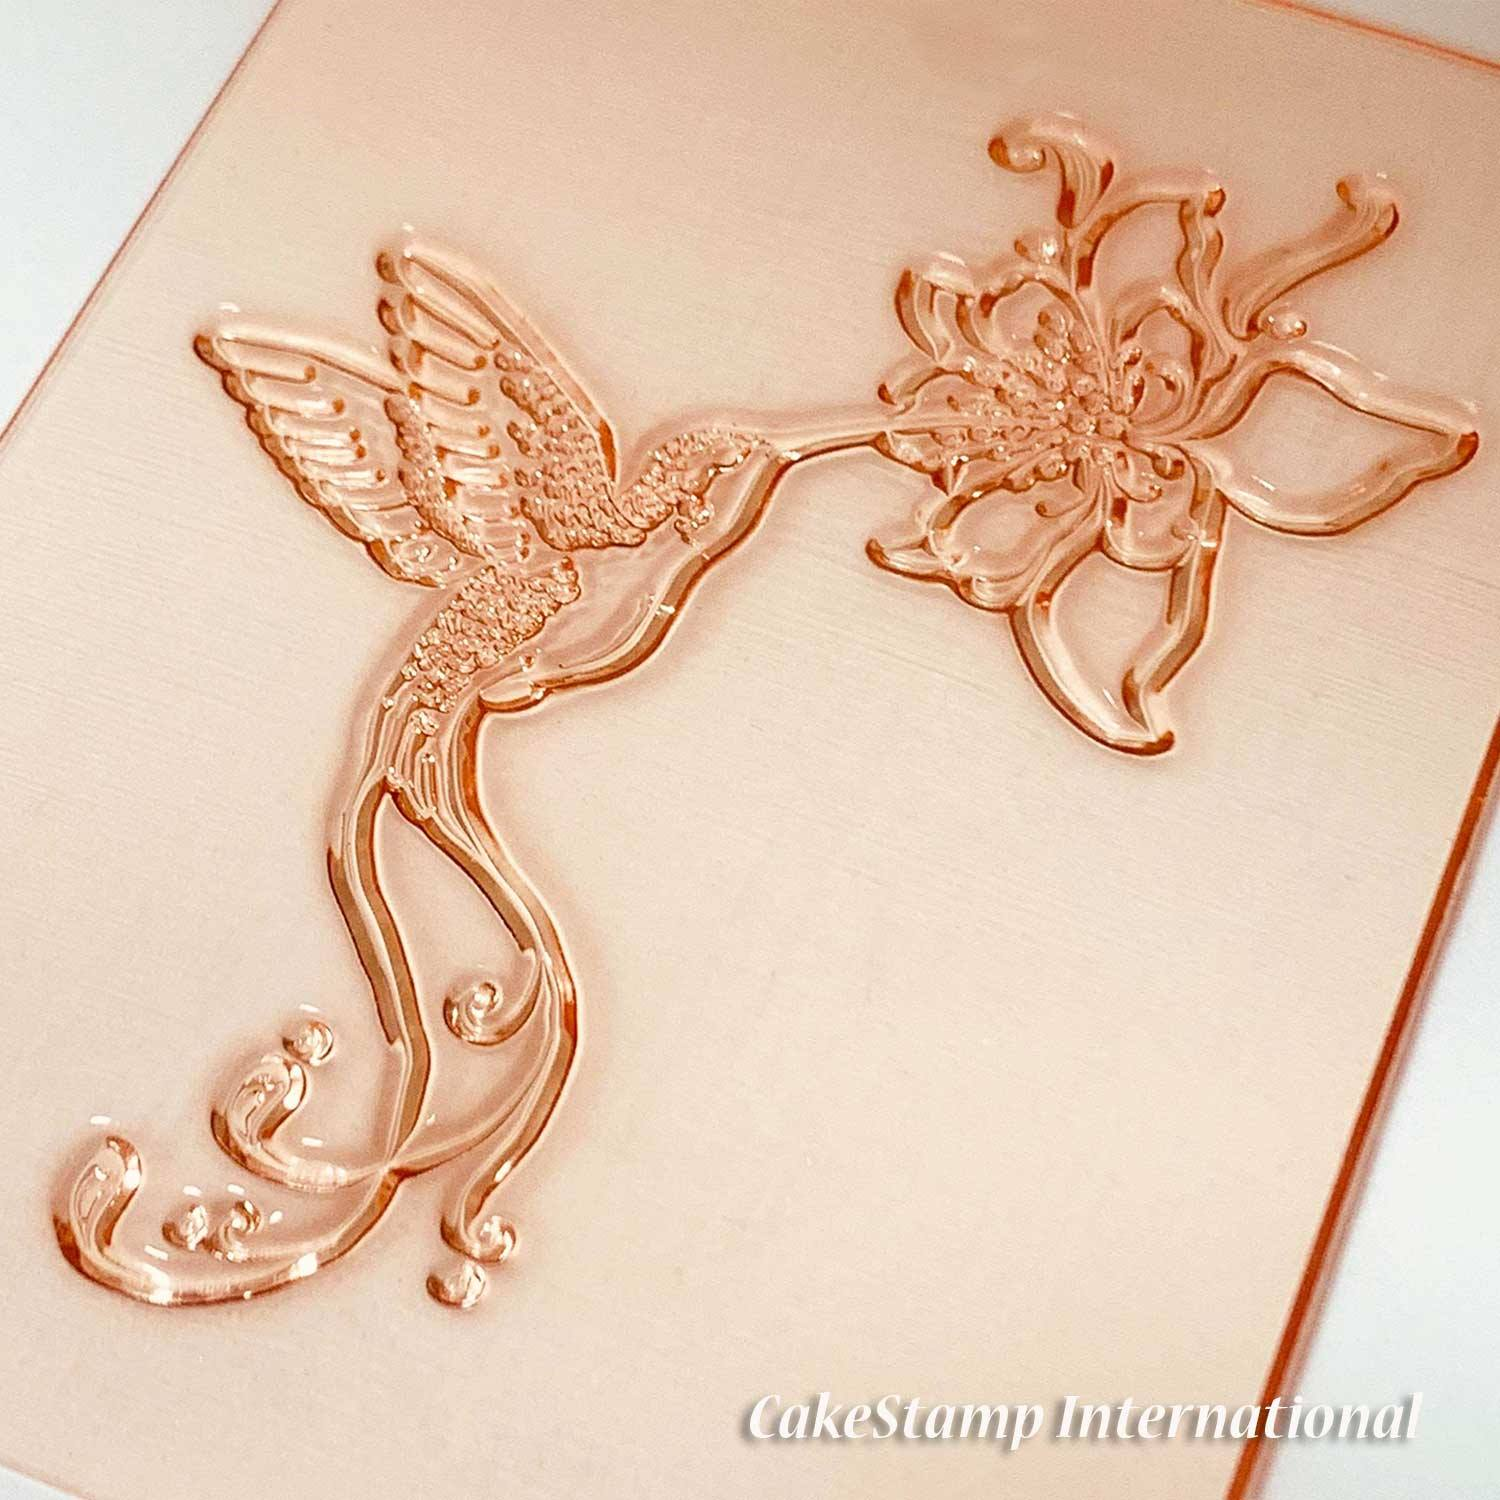 Hummingbird stamp-  Big